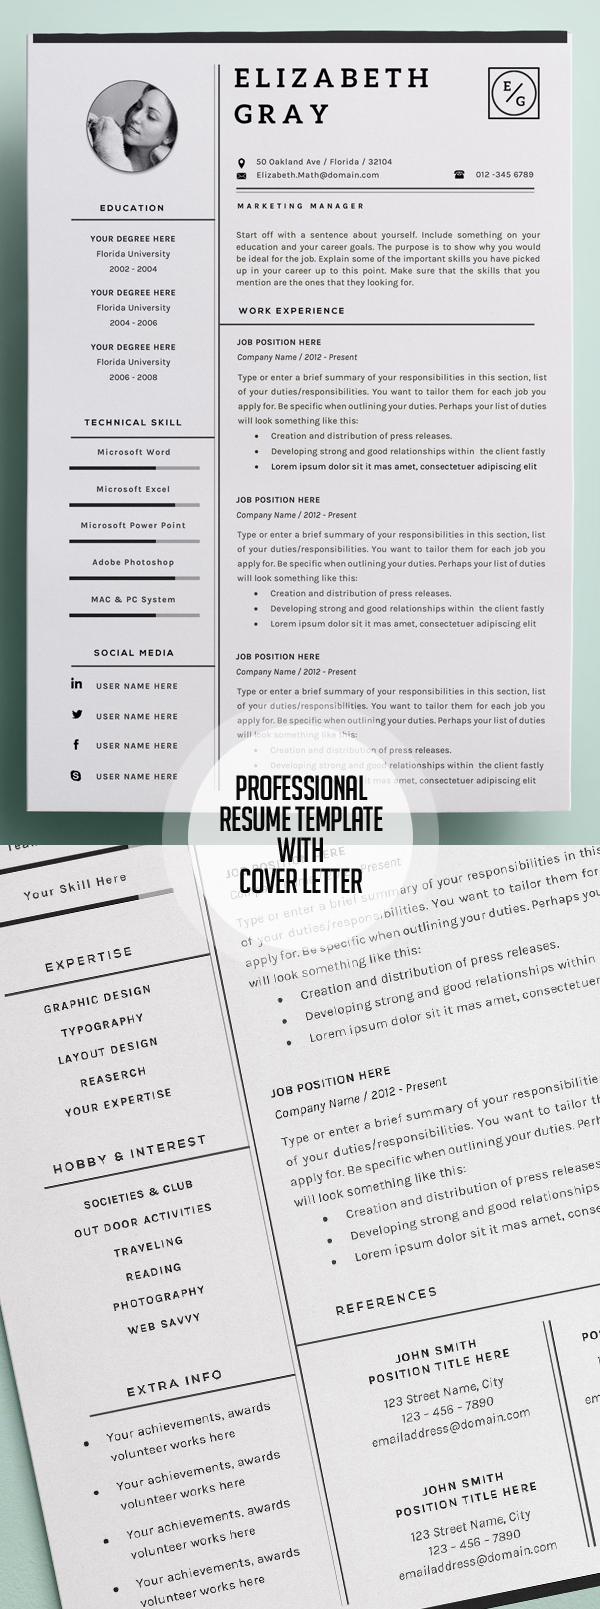 modern resume cover letter template